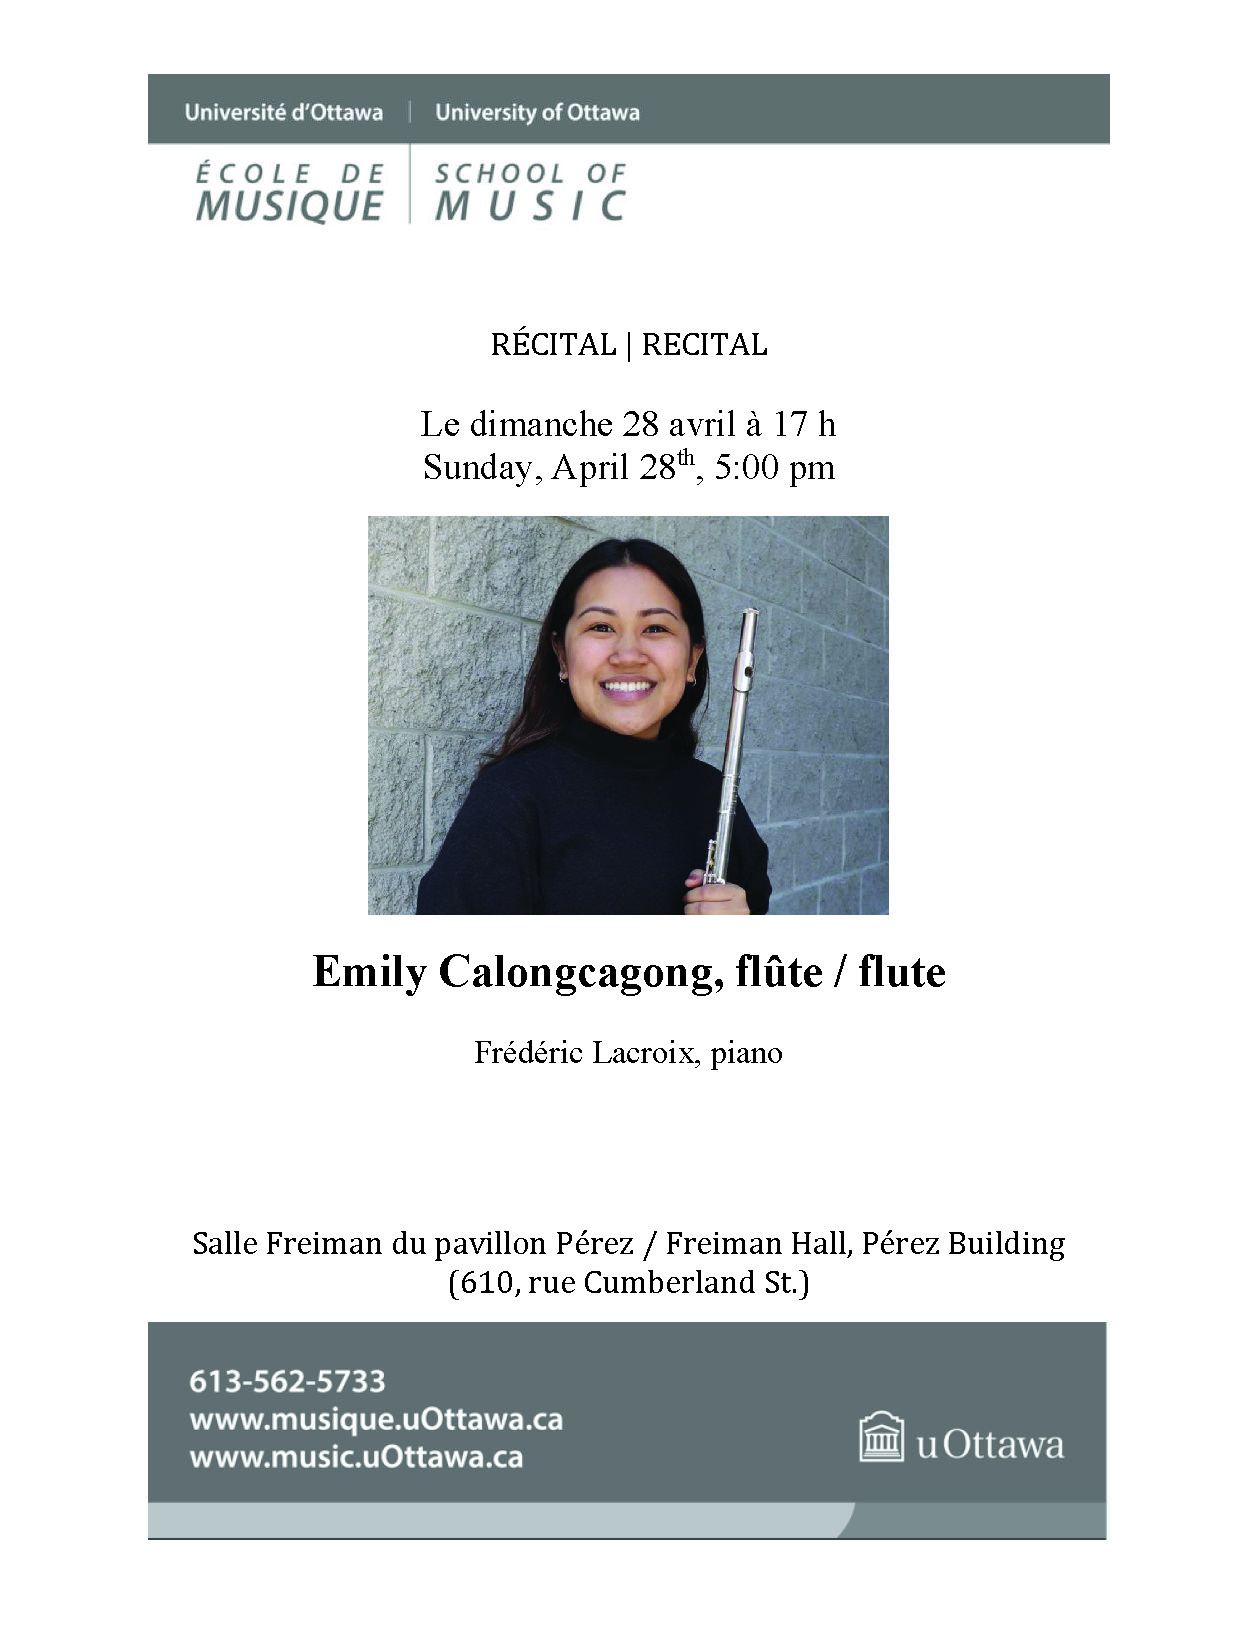 Recital program for Emily Calongcagong, page 1